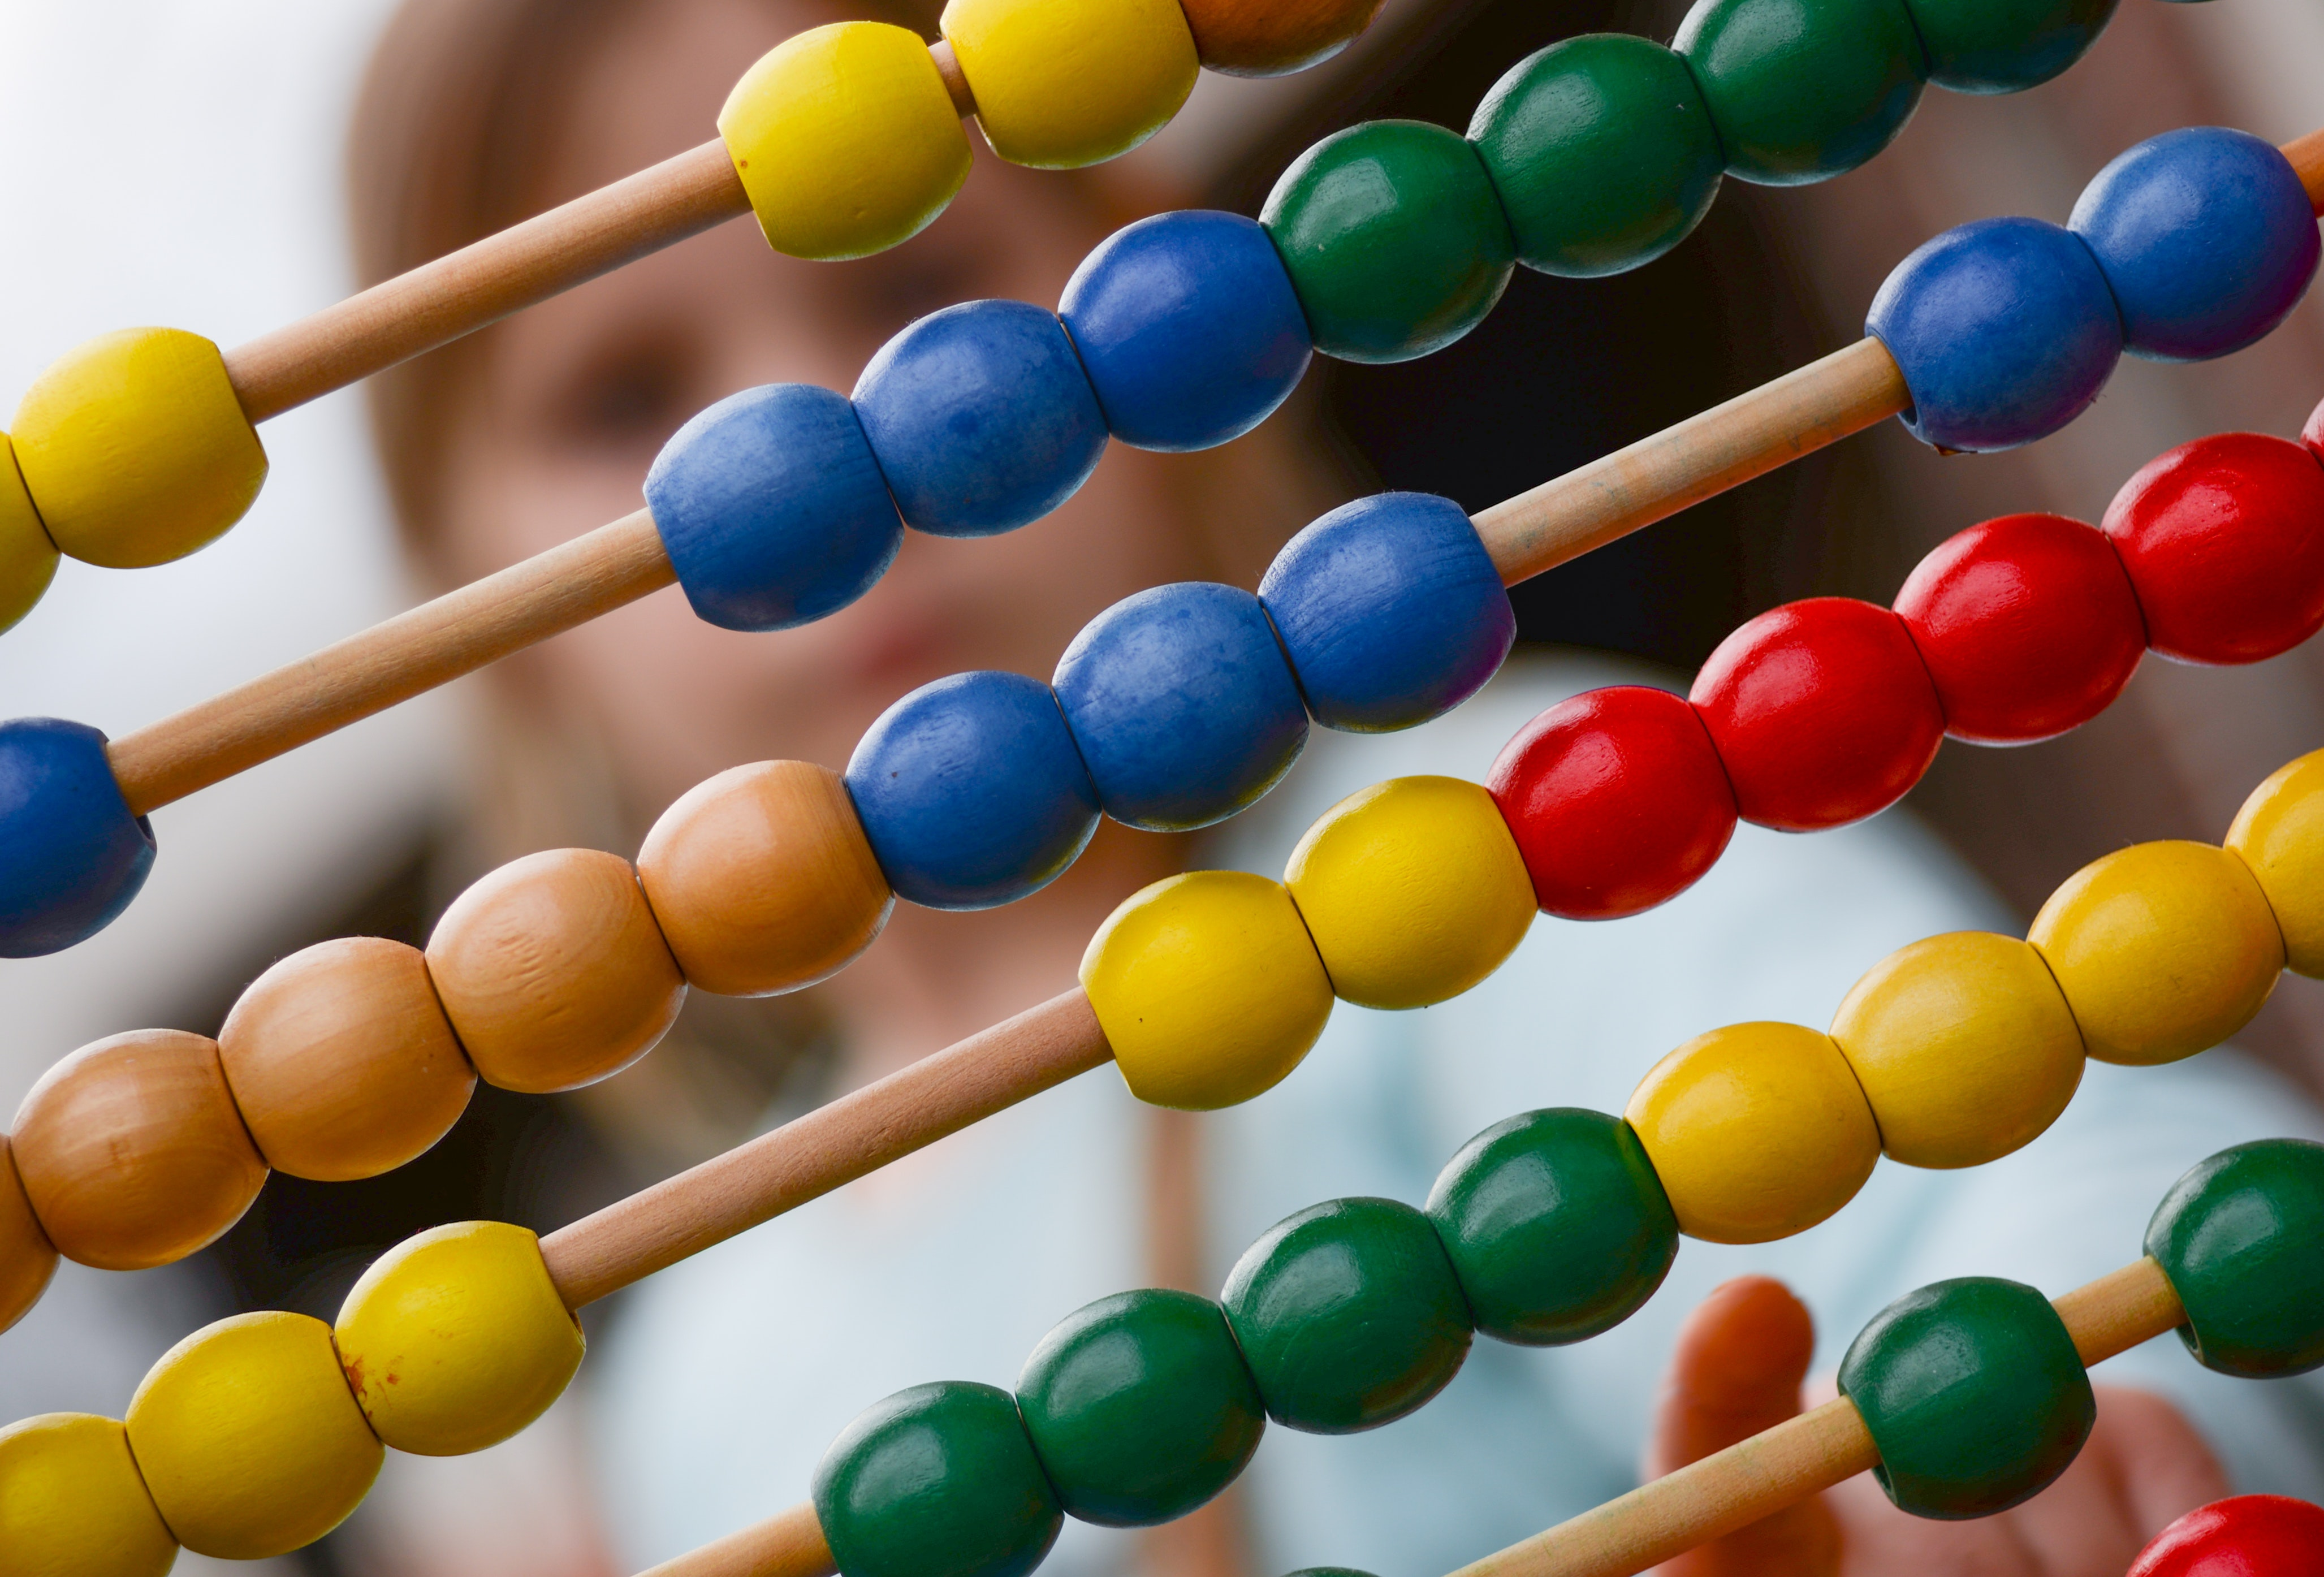 math camps can help children with numeracy